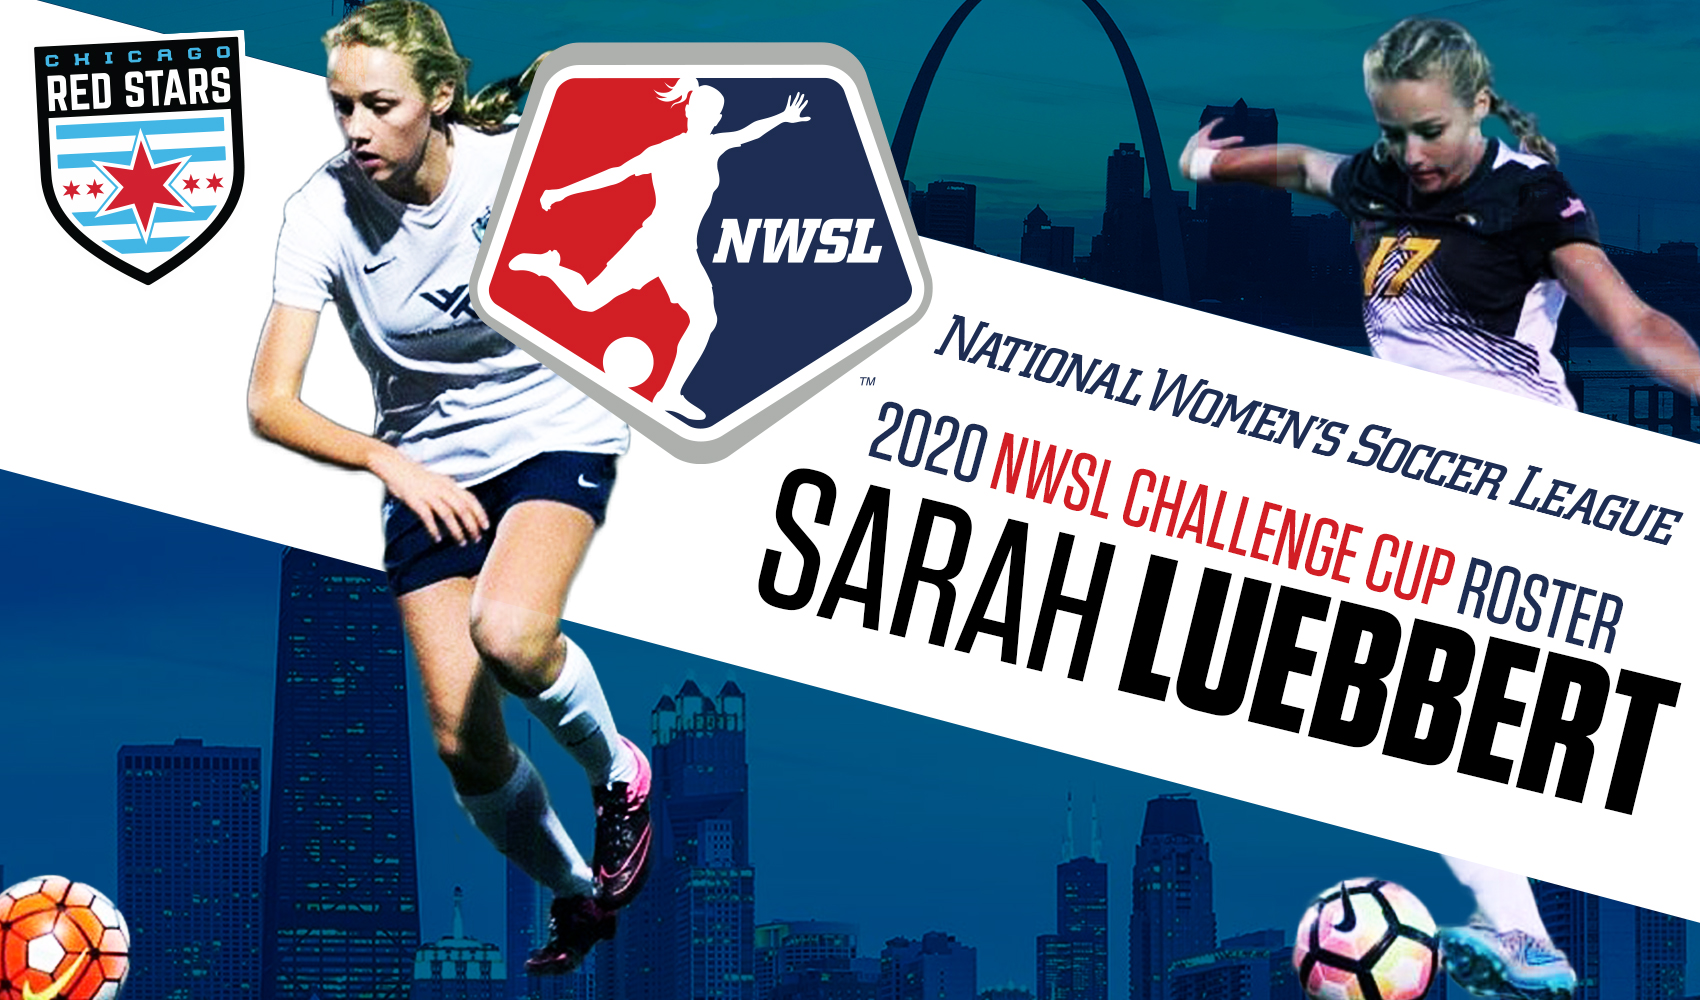 SLSG's Luebbert Signs with NWSL's Chicago Red Stars